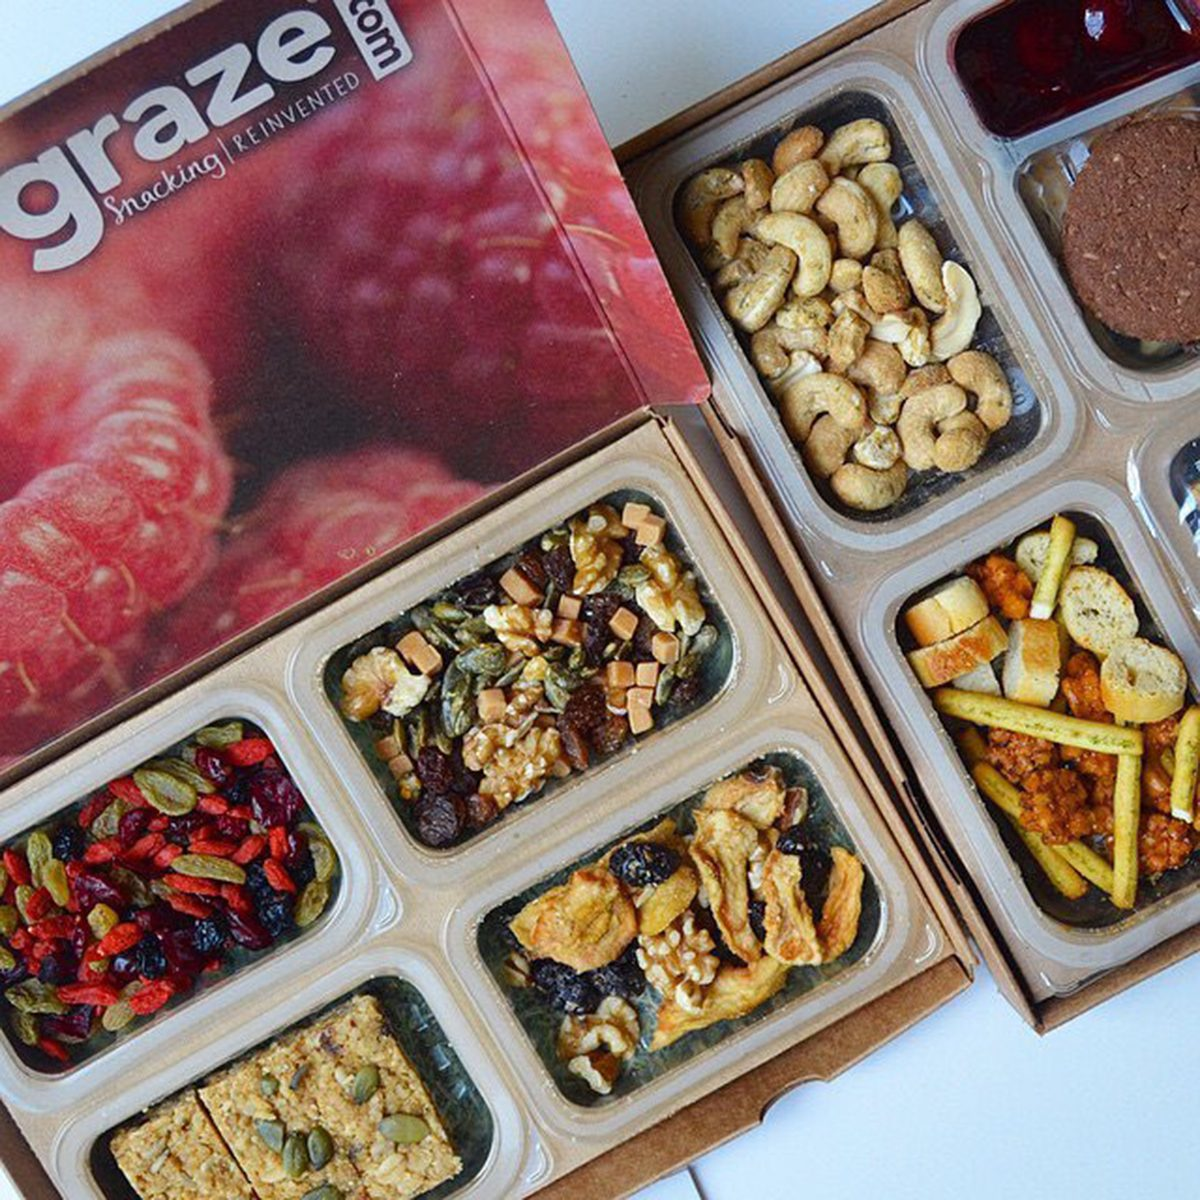 8 Healthy Snack Box Subscriptions You Should Try